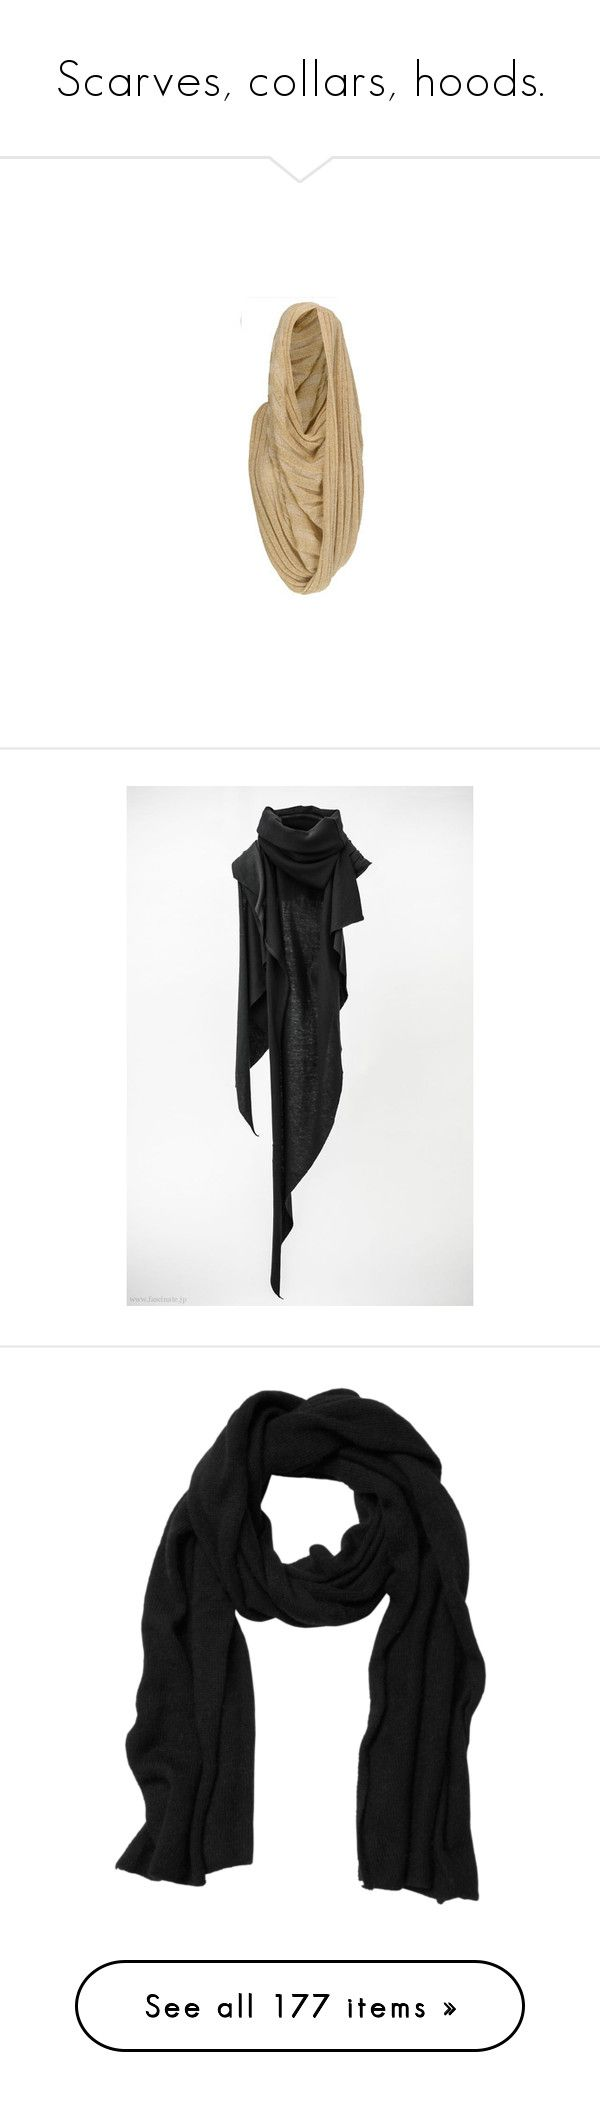 """Scarves, collars, hoods."" by morbid-octobur ❤ liked on Polyvore featuring accessories, scarves, hats, hoods, missoni, cachecol, bufandas, lenços, black magic and woven scarves"